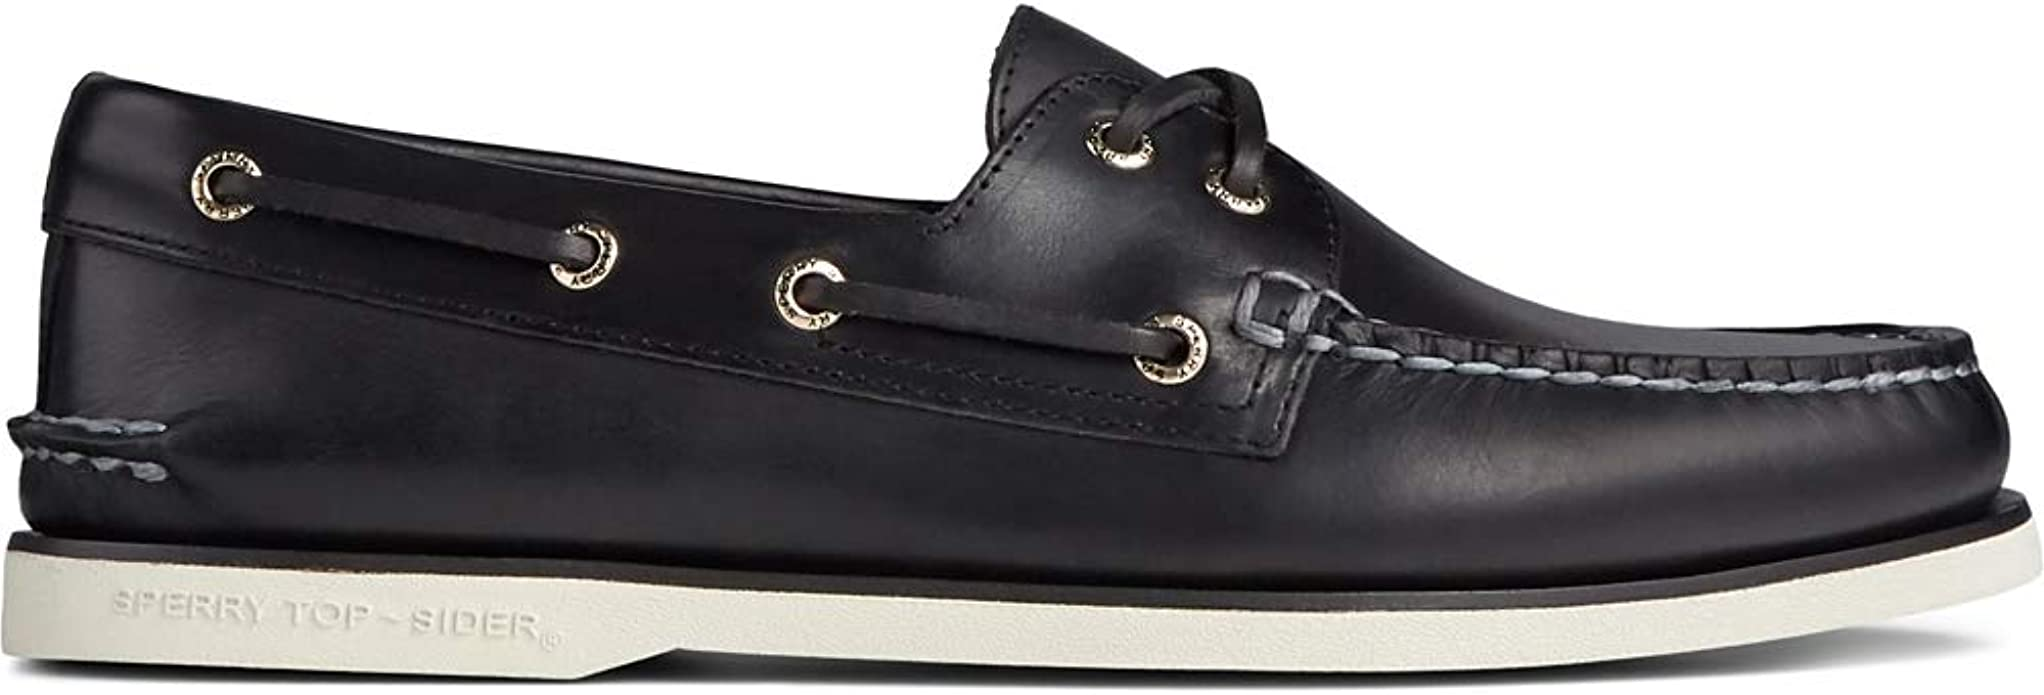 Eye Roustabout Boat Shoes Brown Black